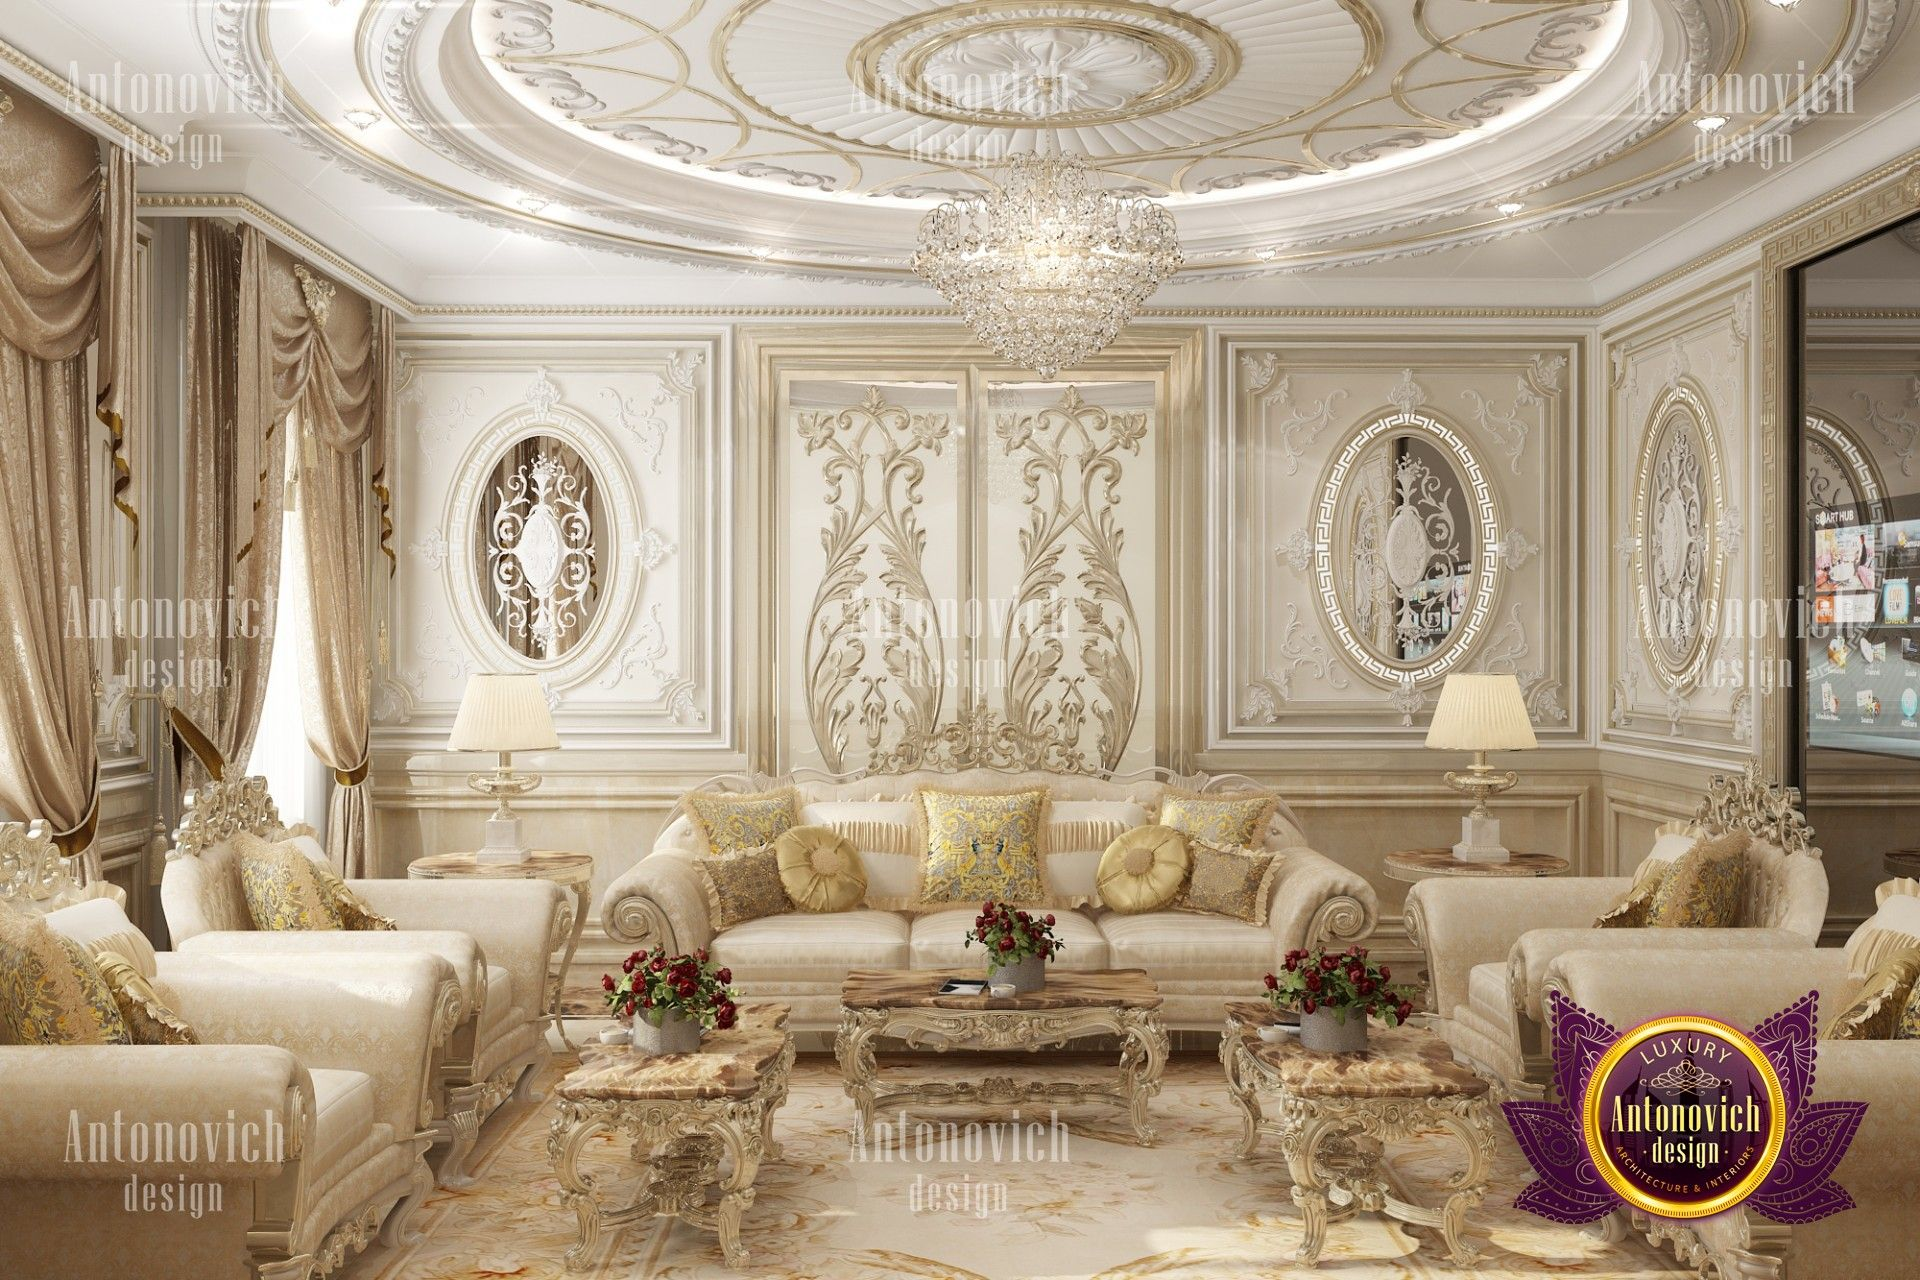 Luxurious Villa Interior In Abuja If You Are Looking For A